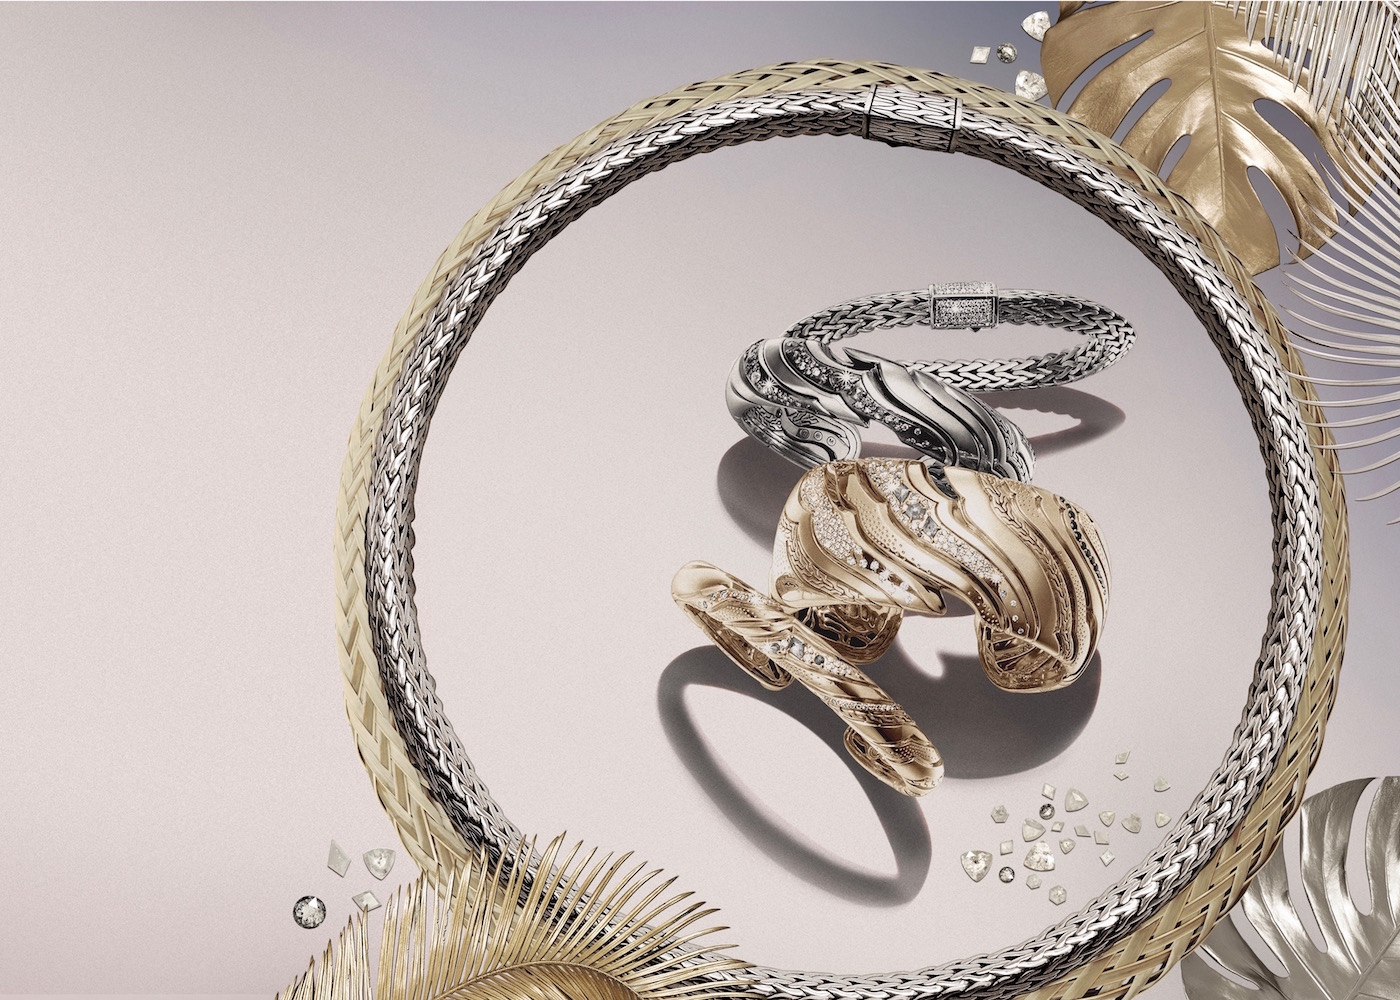 John Hardy gold and silver jewellery